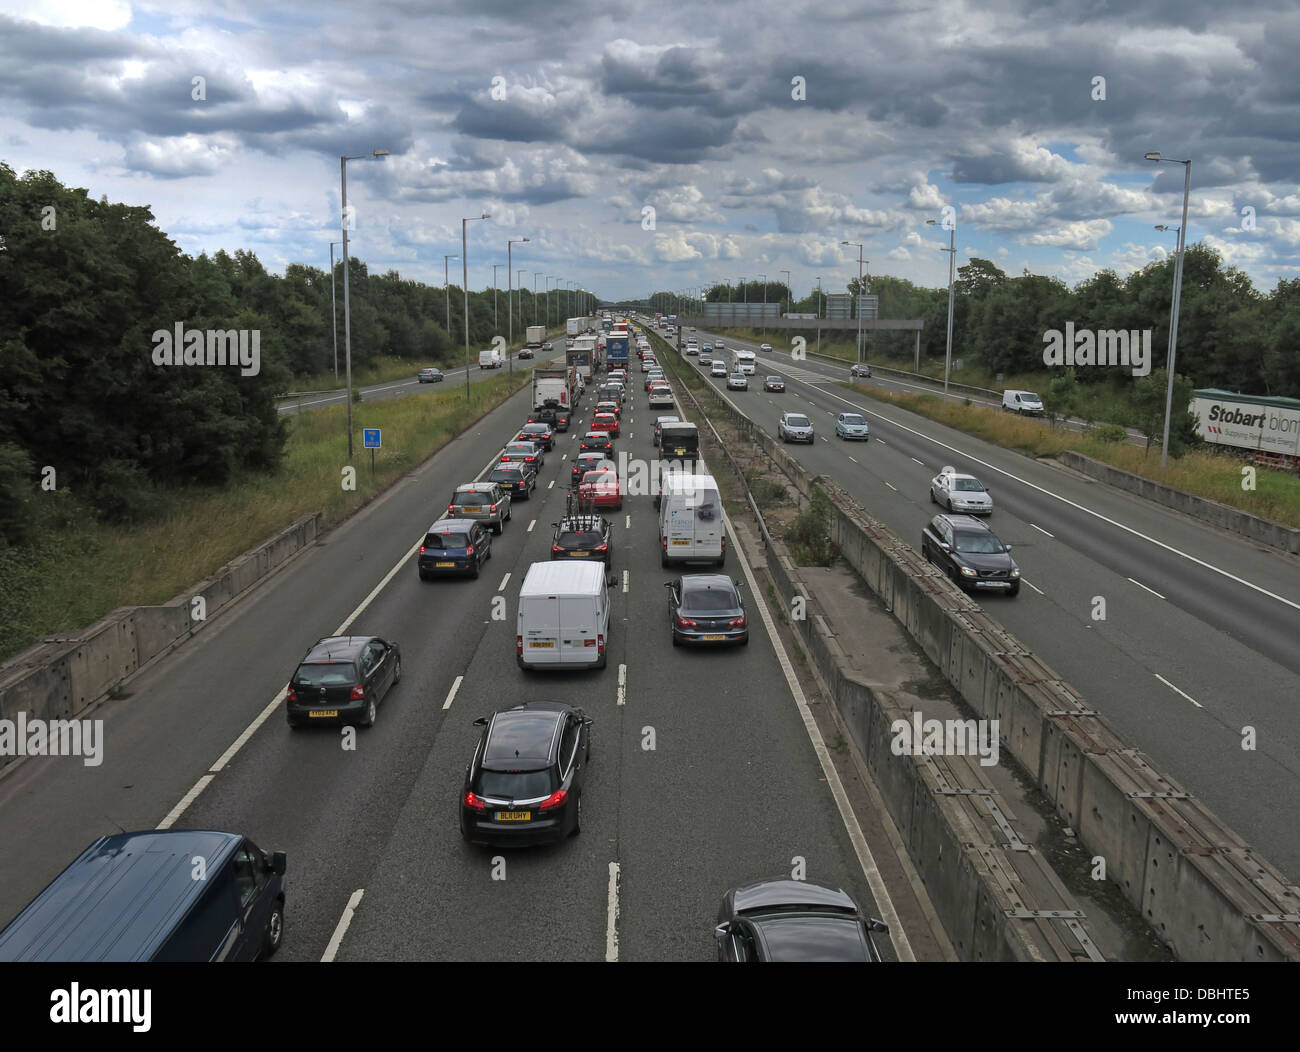 Thelwall,congestion,driver,car,drivers,frustration,AA,RAC,british,UK,GB,English,south,bound,traffic,problems,toll,motorway,motorways,road,roads,topgear,70mph,speed,limit,speedlimit,managed,queue,longer,trip,times,vehicular,queueing,snarl-up,snarl,up,volume,increased,green,issues,eco,friendly,Gotonysmith,eco-friendly,fossil,fuels,petrol,gas,gasoline,diesel,guzzing,high,mpg,chelsea,tractors,Cheshire,Warrington,Midlands,English,England,GB,Great,Britain,most,congested,DOt,Department,for,Transport,DVLA,public,transport,UK,road,pricing,roadpricing,road-pricing,Buy Pictures of,Buy Images Of